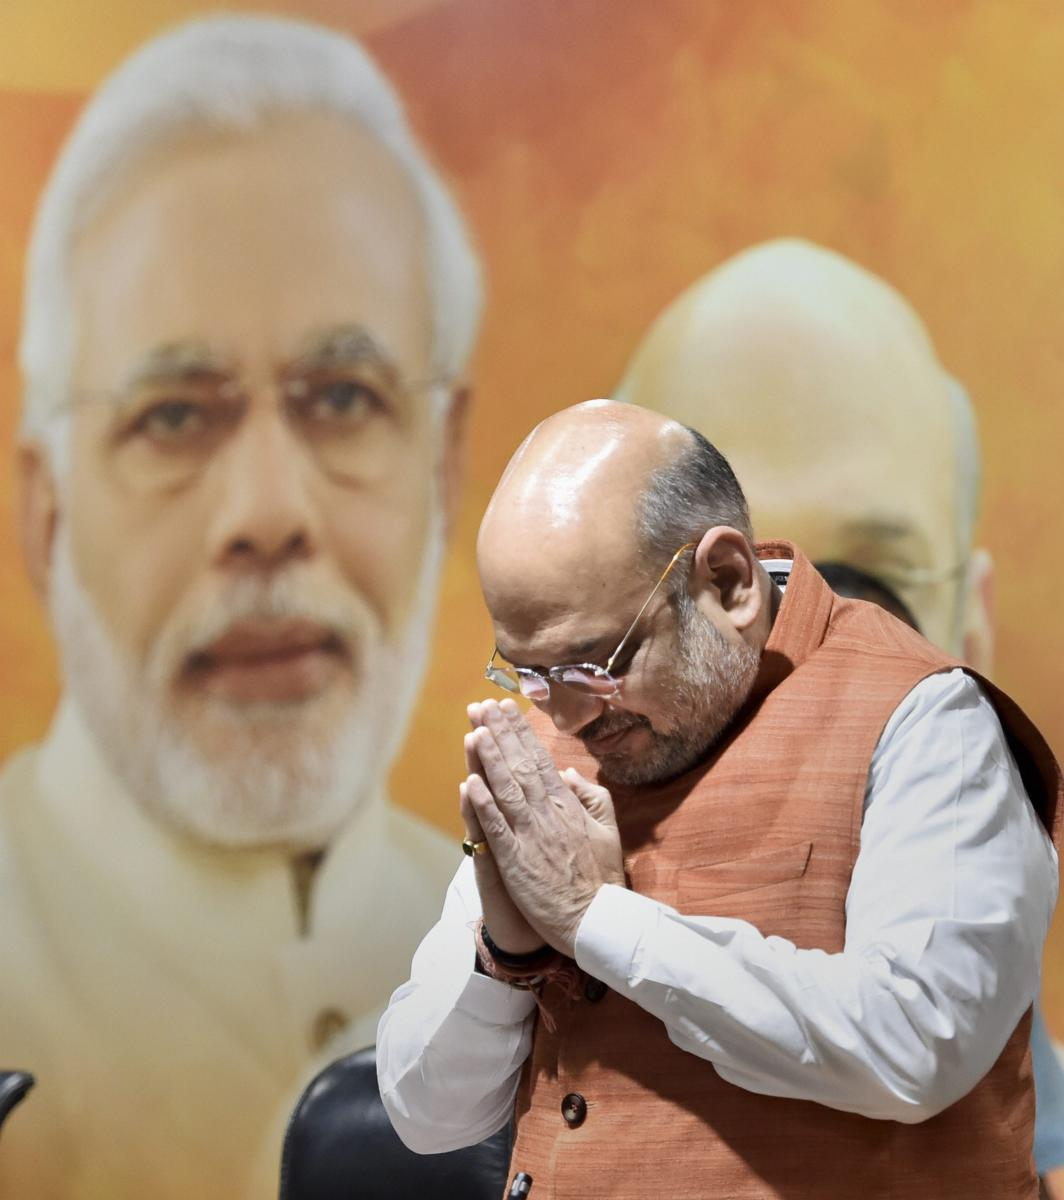 After the setback which the BJP suffered in the recently-concluded bypolls, this seems to be a concentrated move of possible rapprochement with the allies including the Shiv Sena.